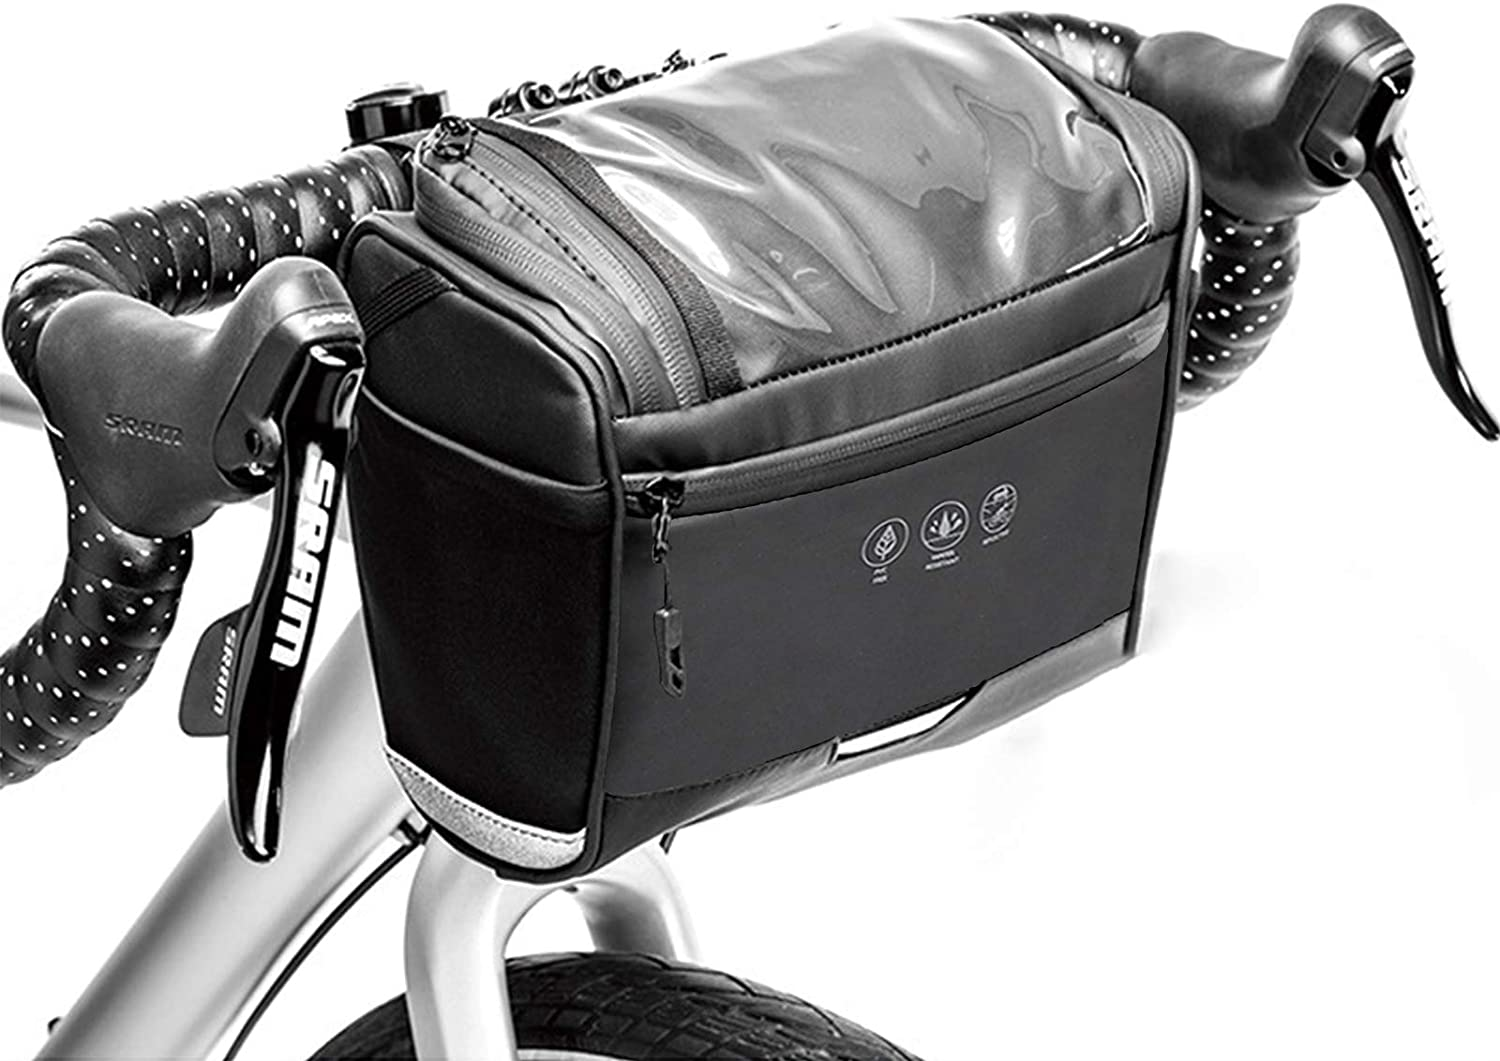 DeepRoar Bike Storage Bag Front Frame Bag with Touch Screen Phone Holder Waterproof and Large Capacity Handlebar Storage Basket Bag for Road and Mountain Bike